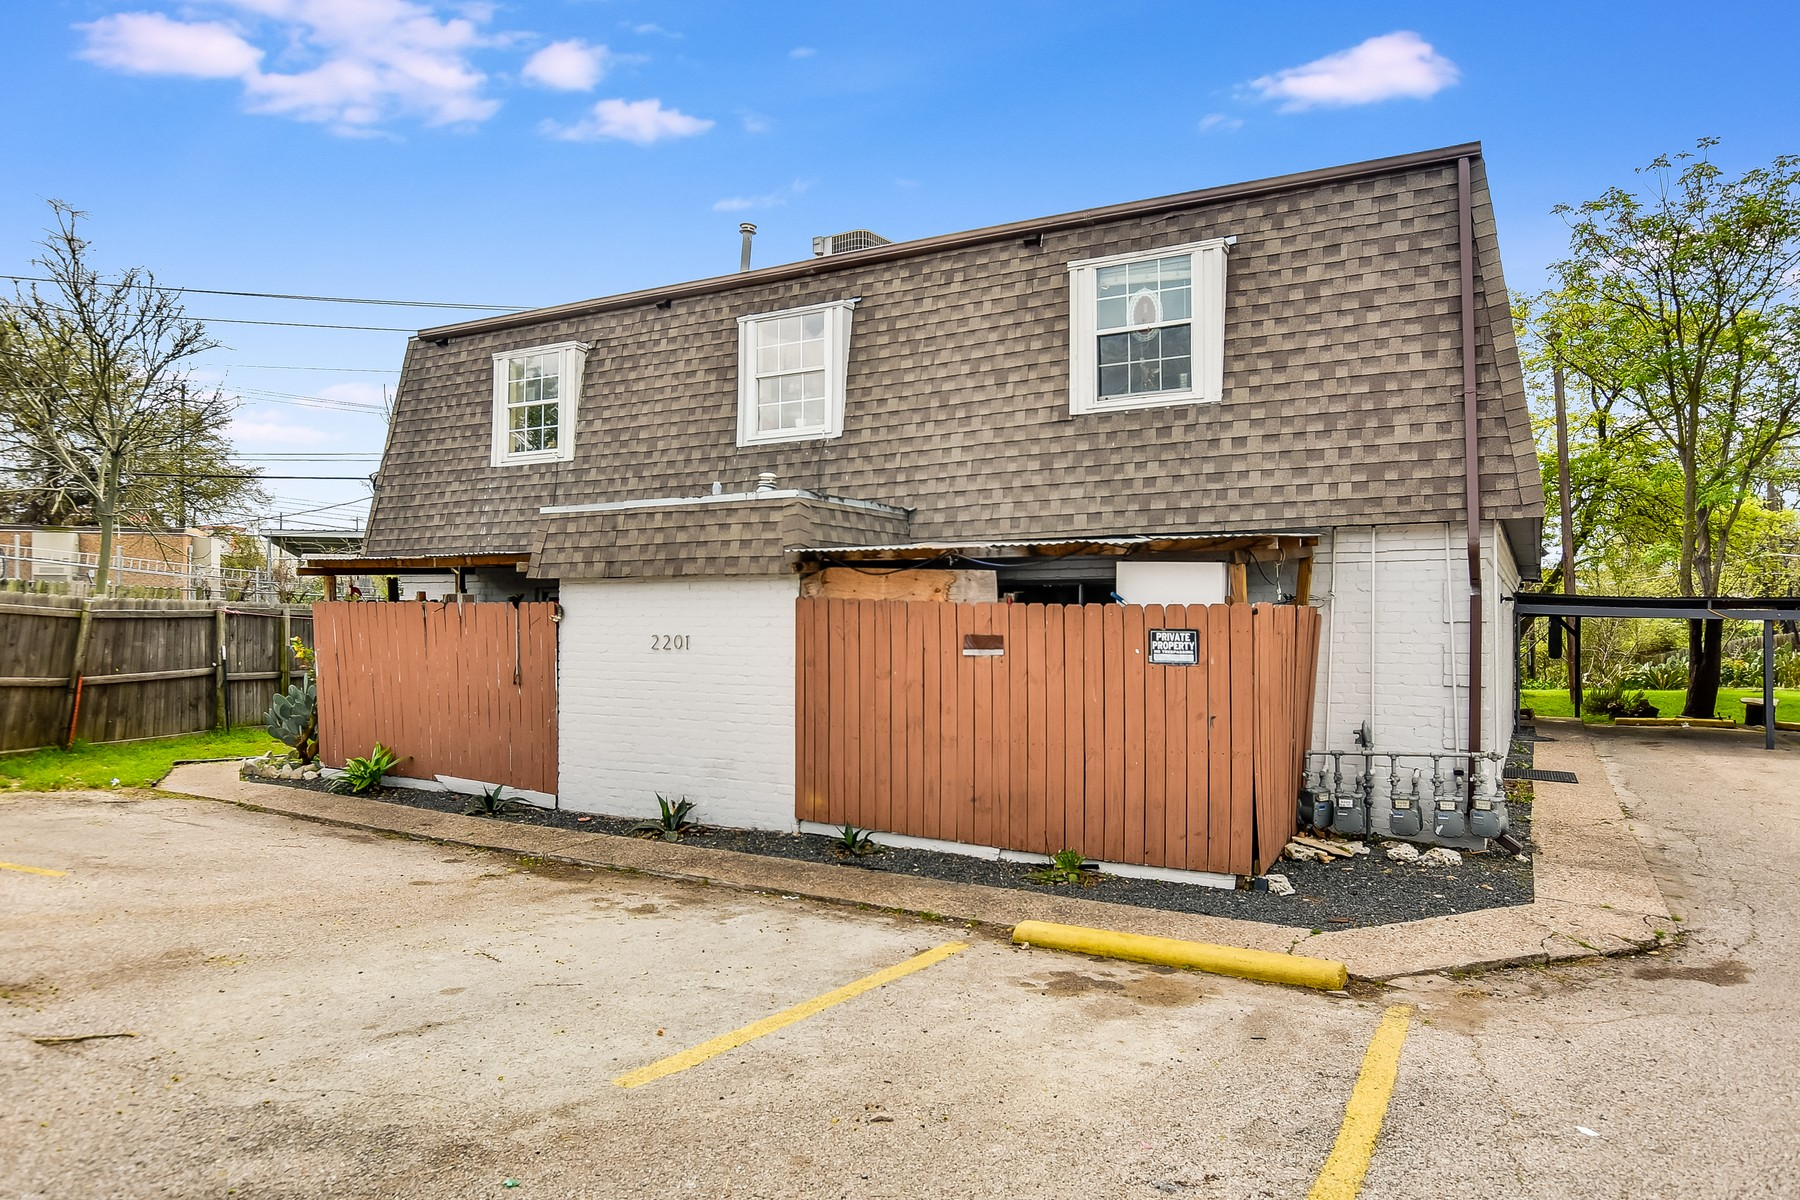 Other Residential for Rent at Lease Opportunity on Mission Hill 2201 Mission Hill Cir 3 Austin, Texas 78741 United States